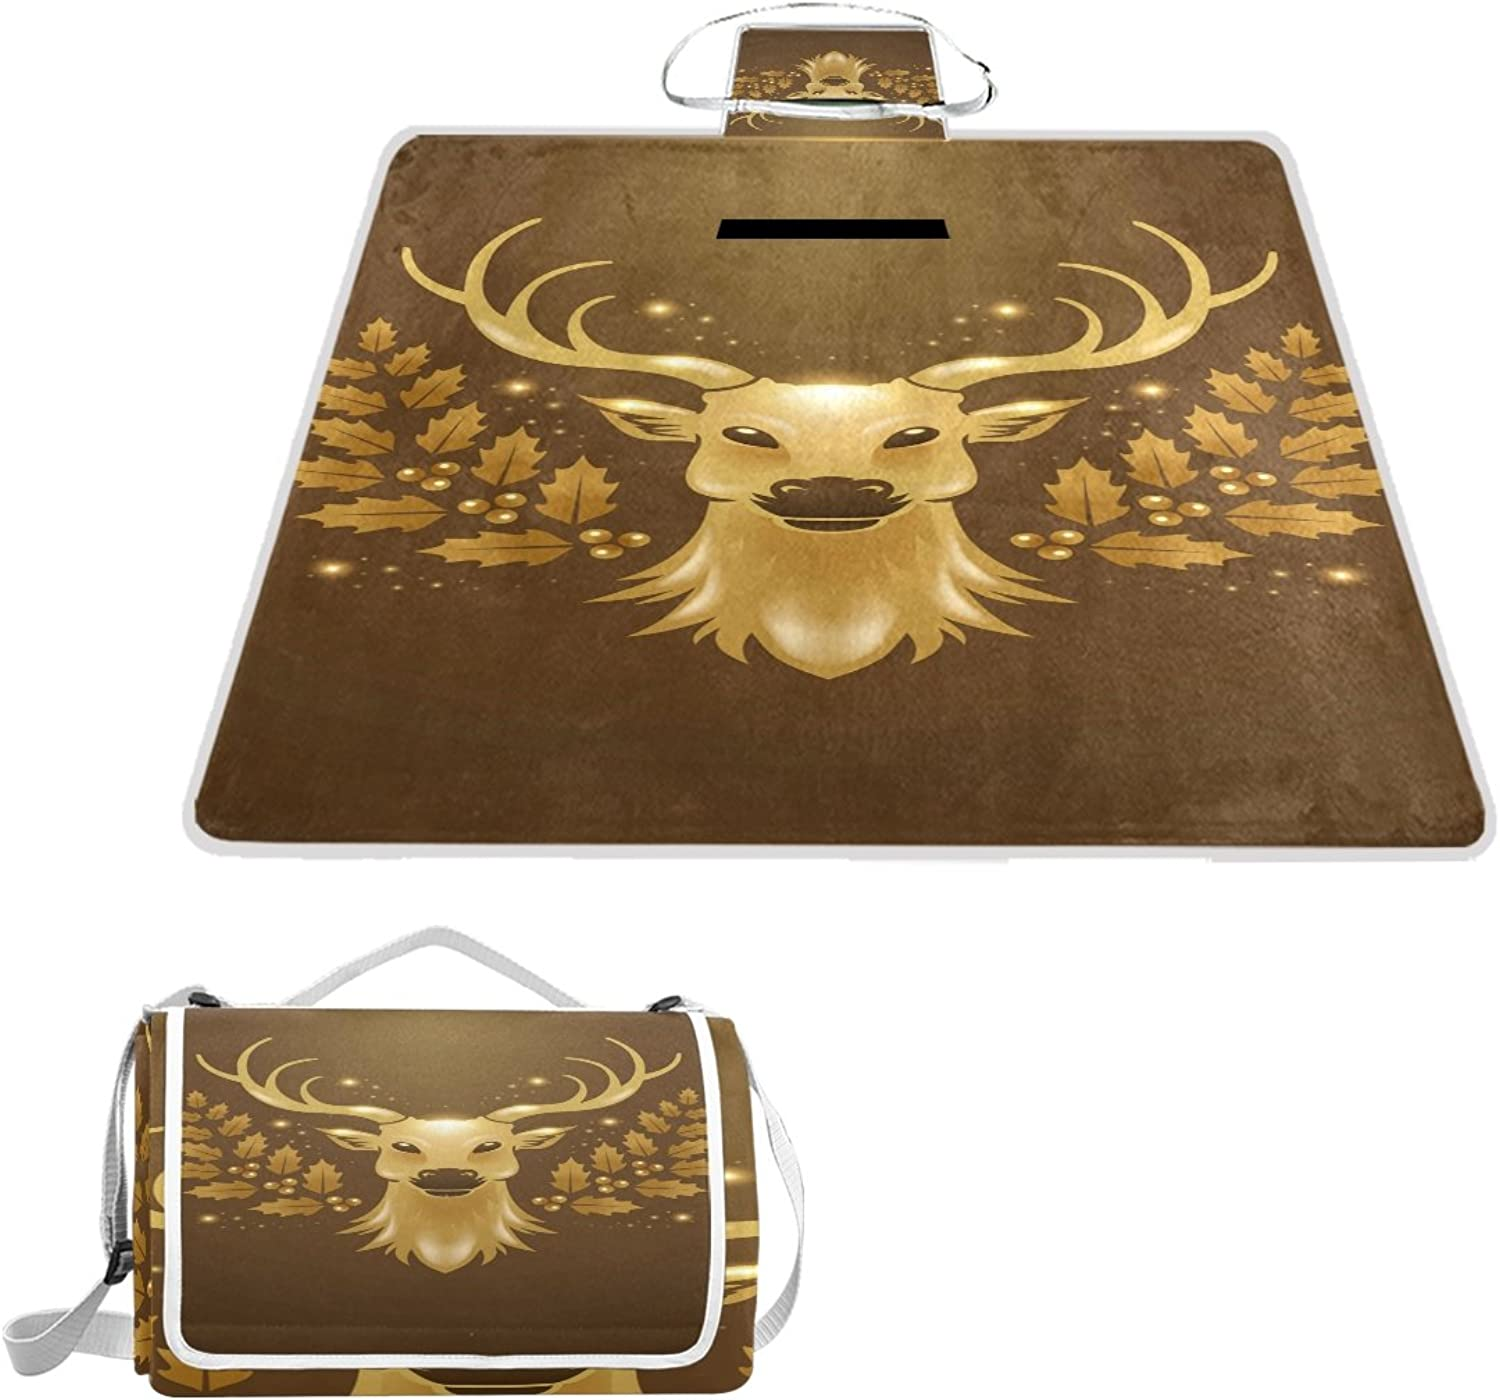 LiKai Picnic Blanket Brown Sheep Foldable Portable Waterproof Outdoor Travelling Camping Beach Mat